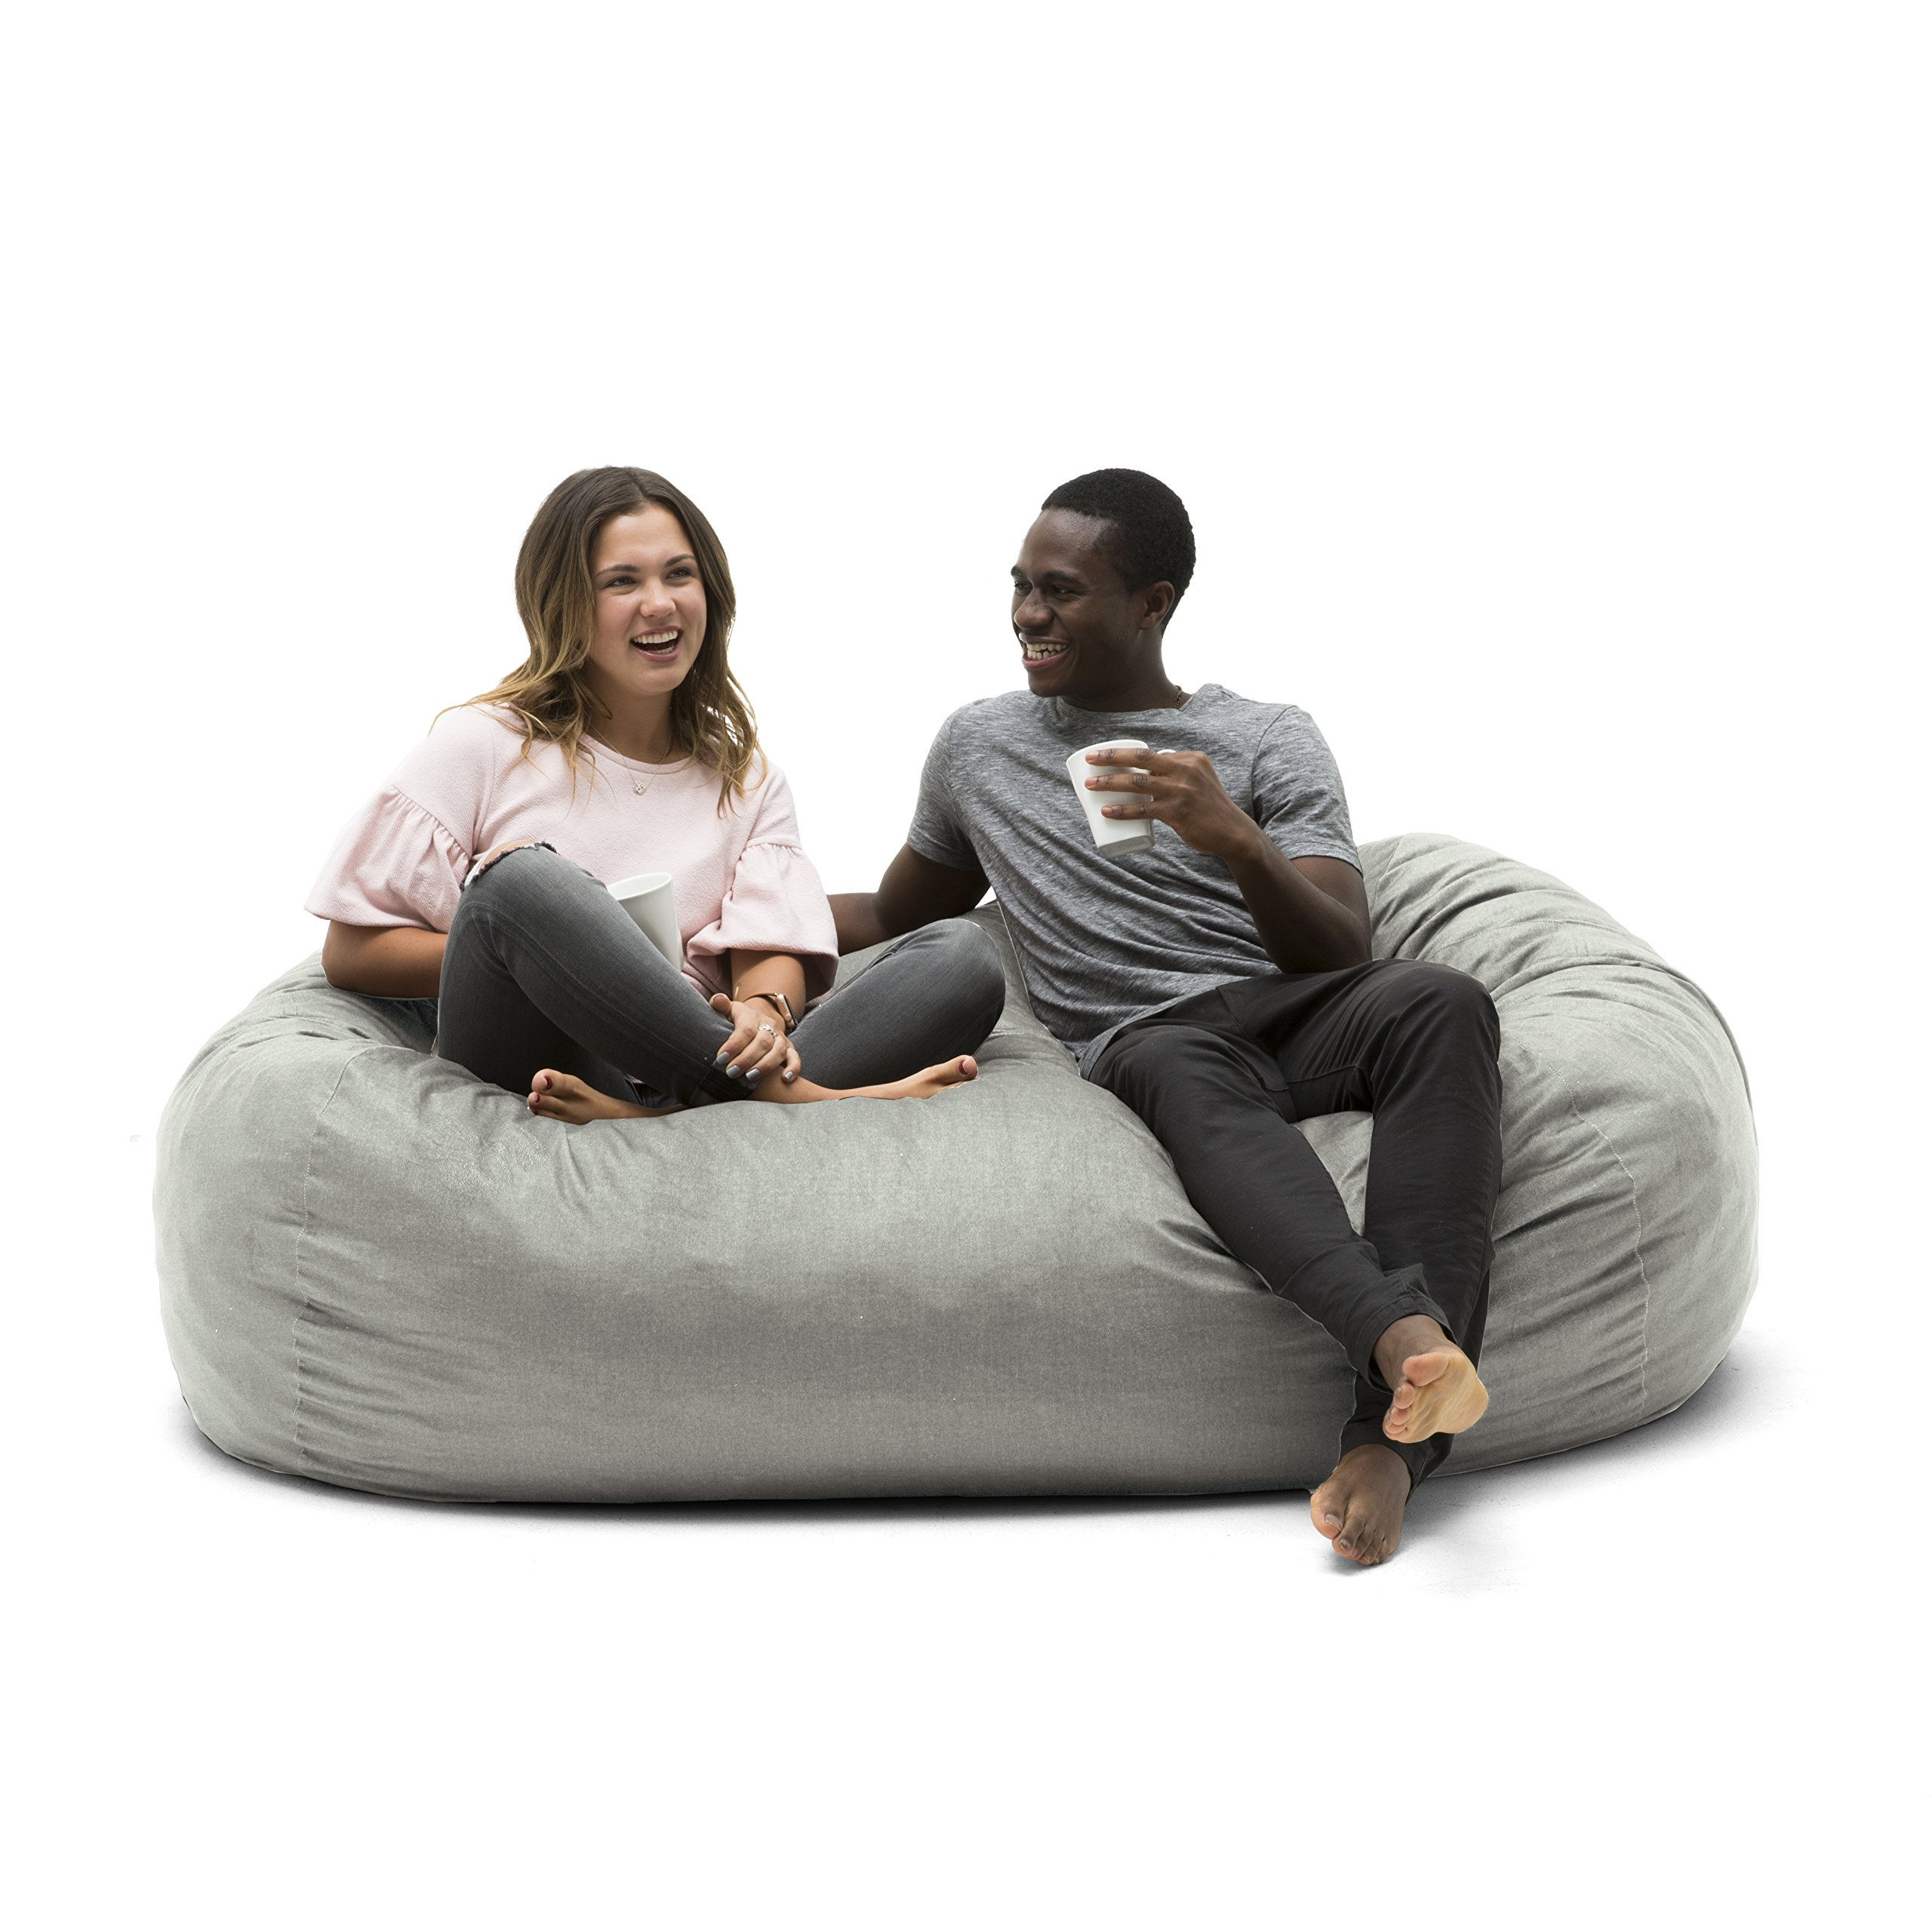 Big Joe Media Lounger, 72x42x42, Fog by Big Joe